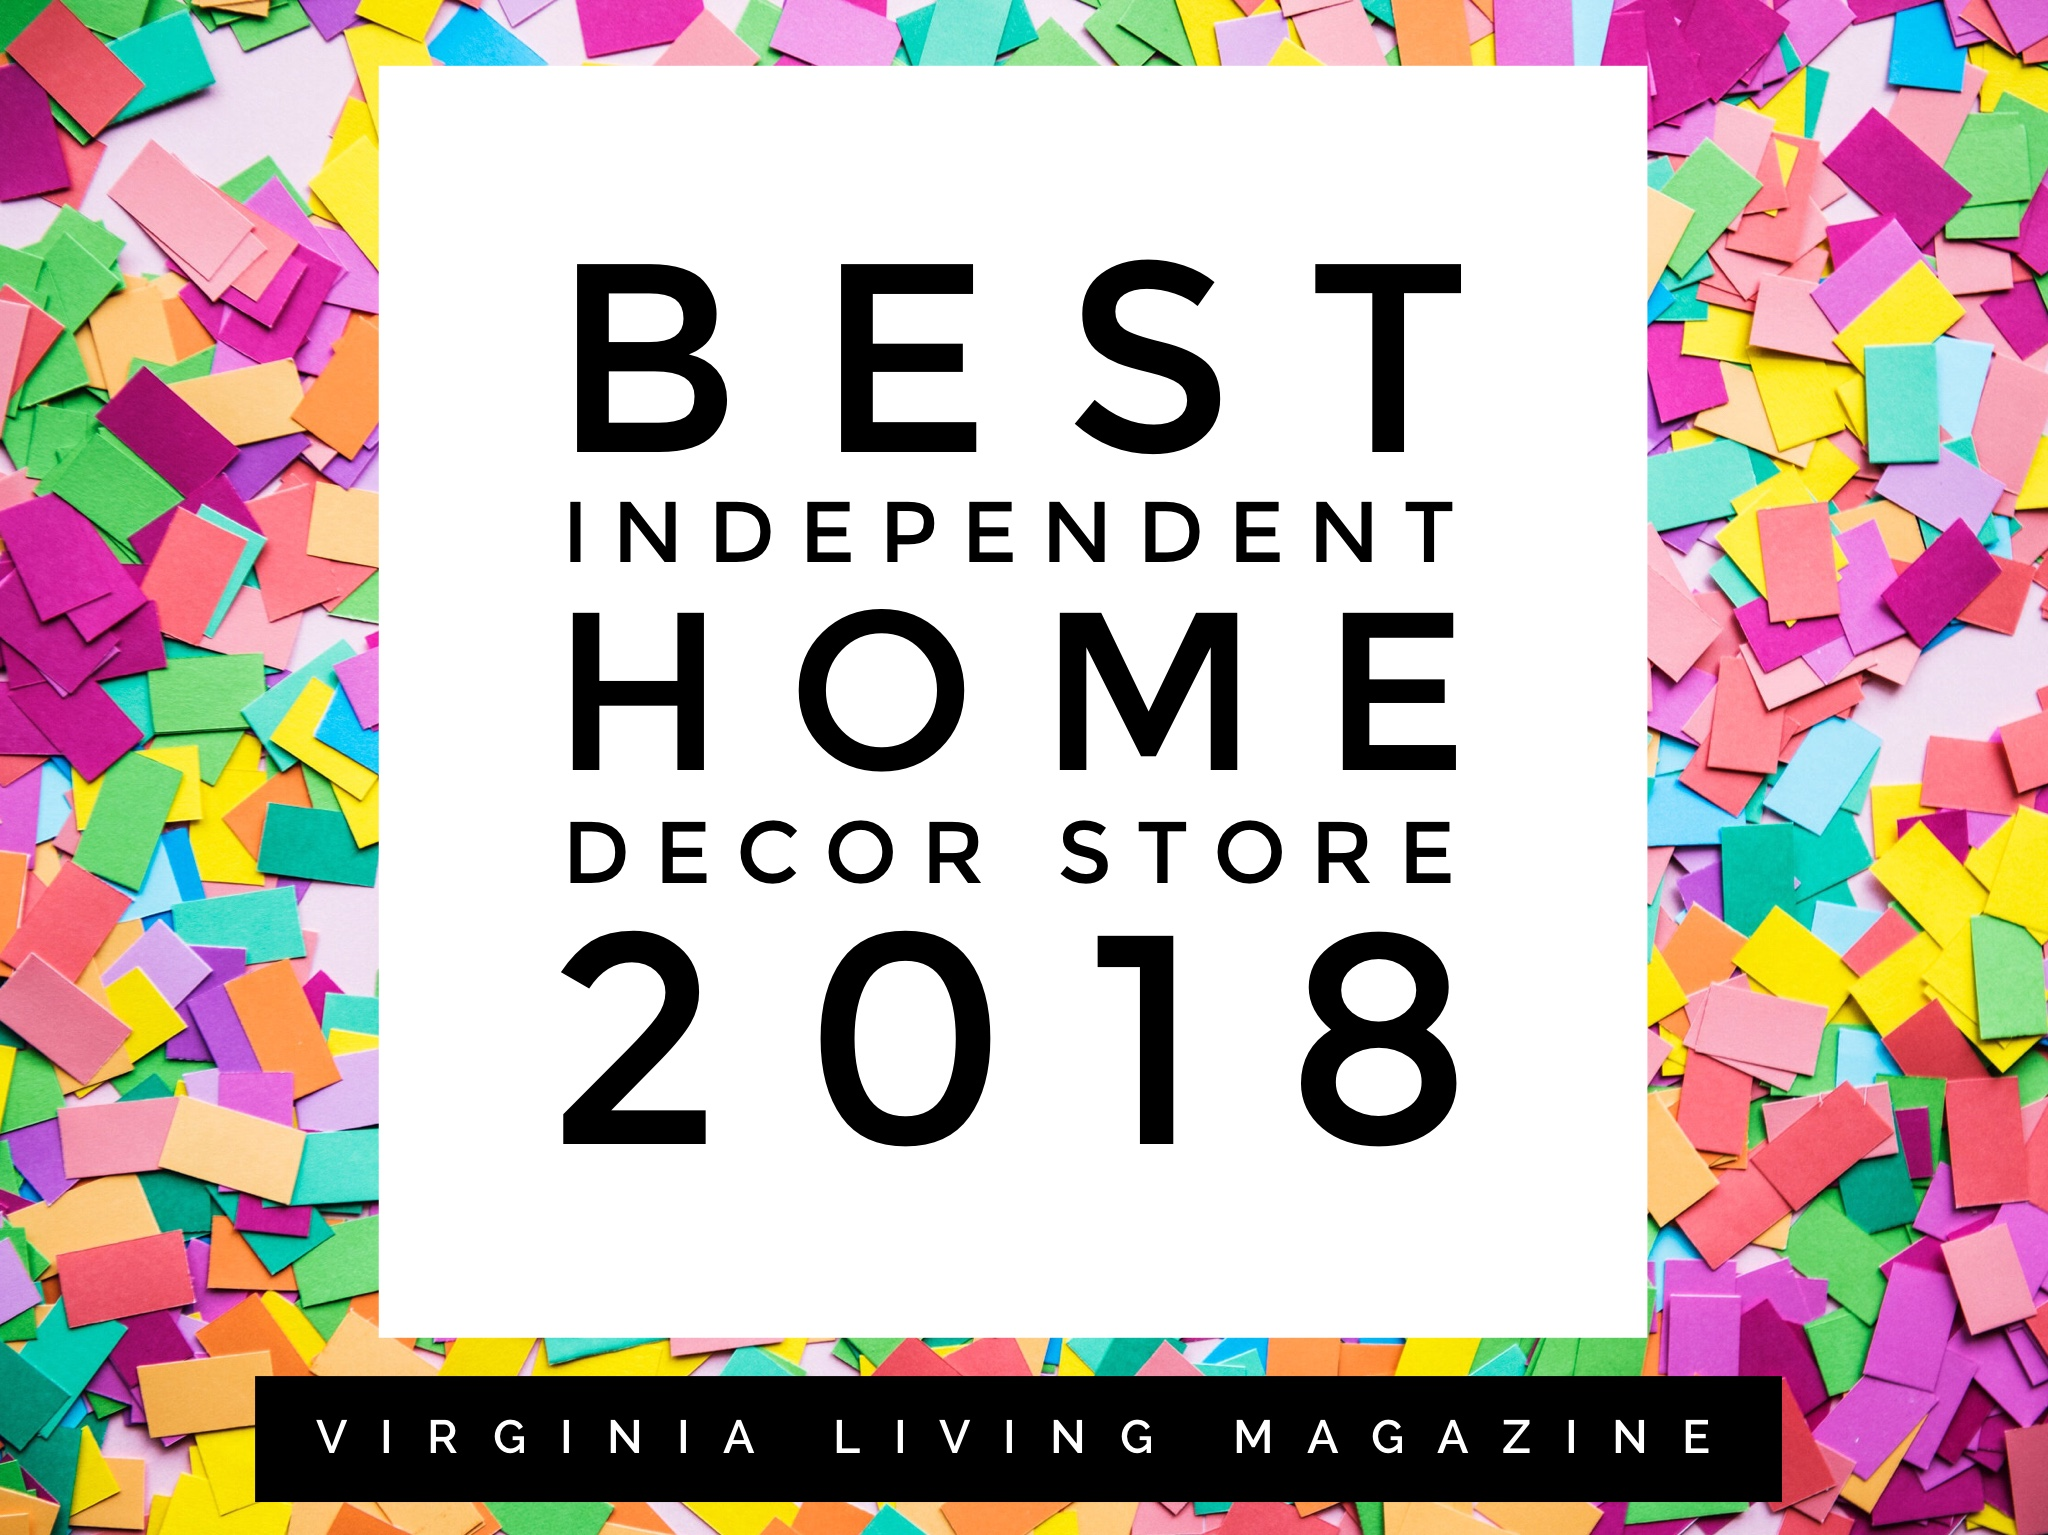 Best Independent Home Decor Store